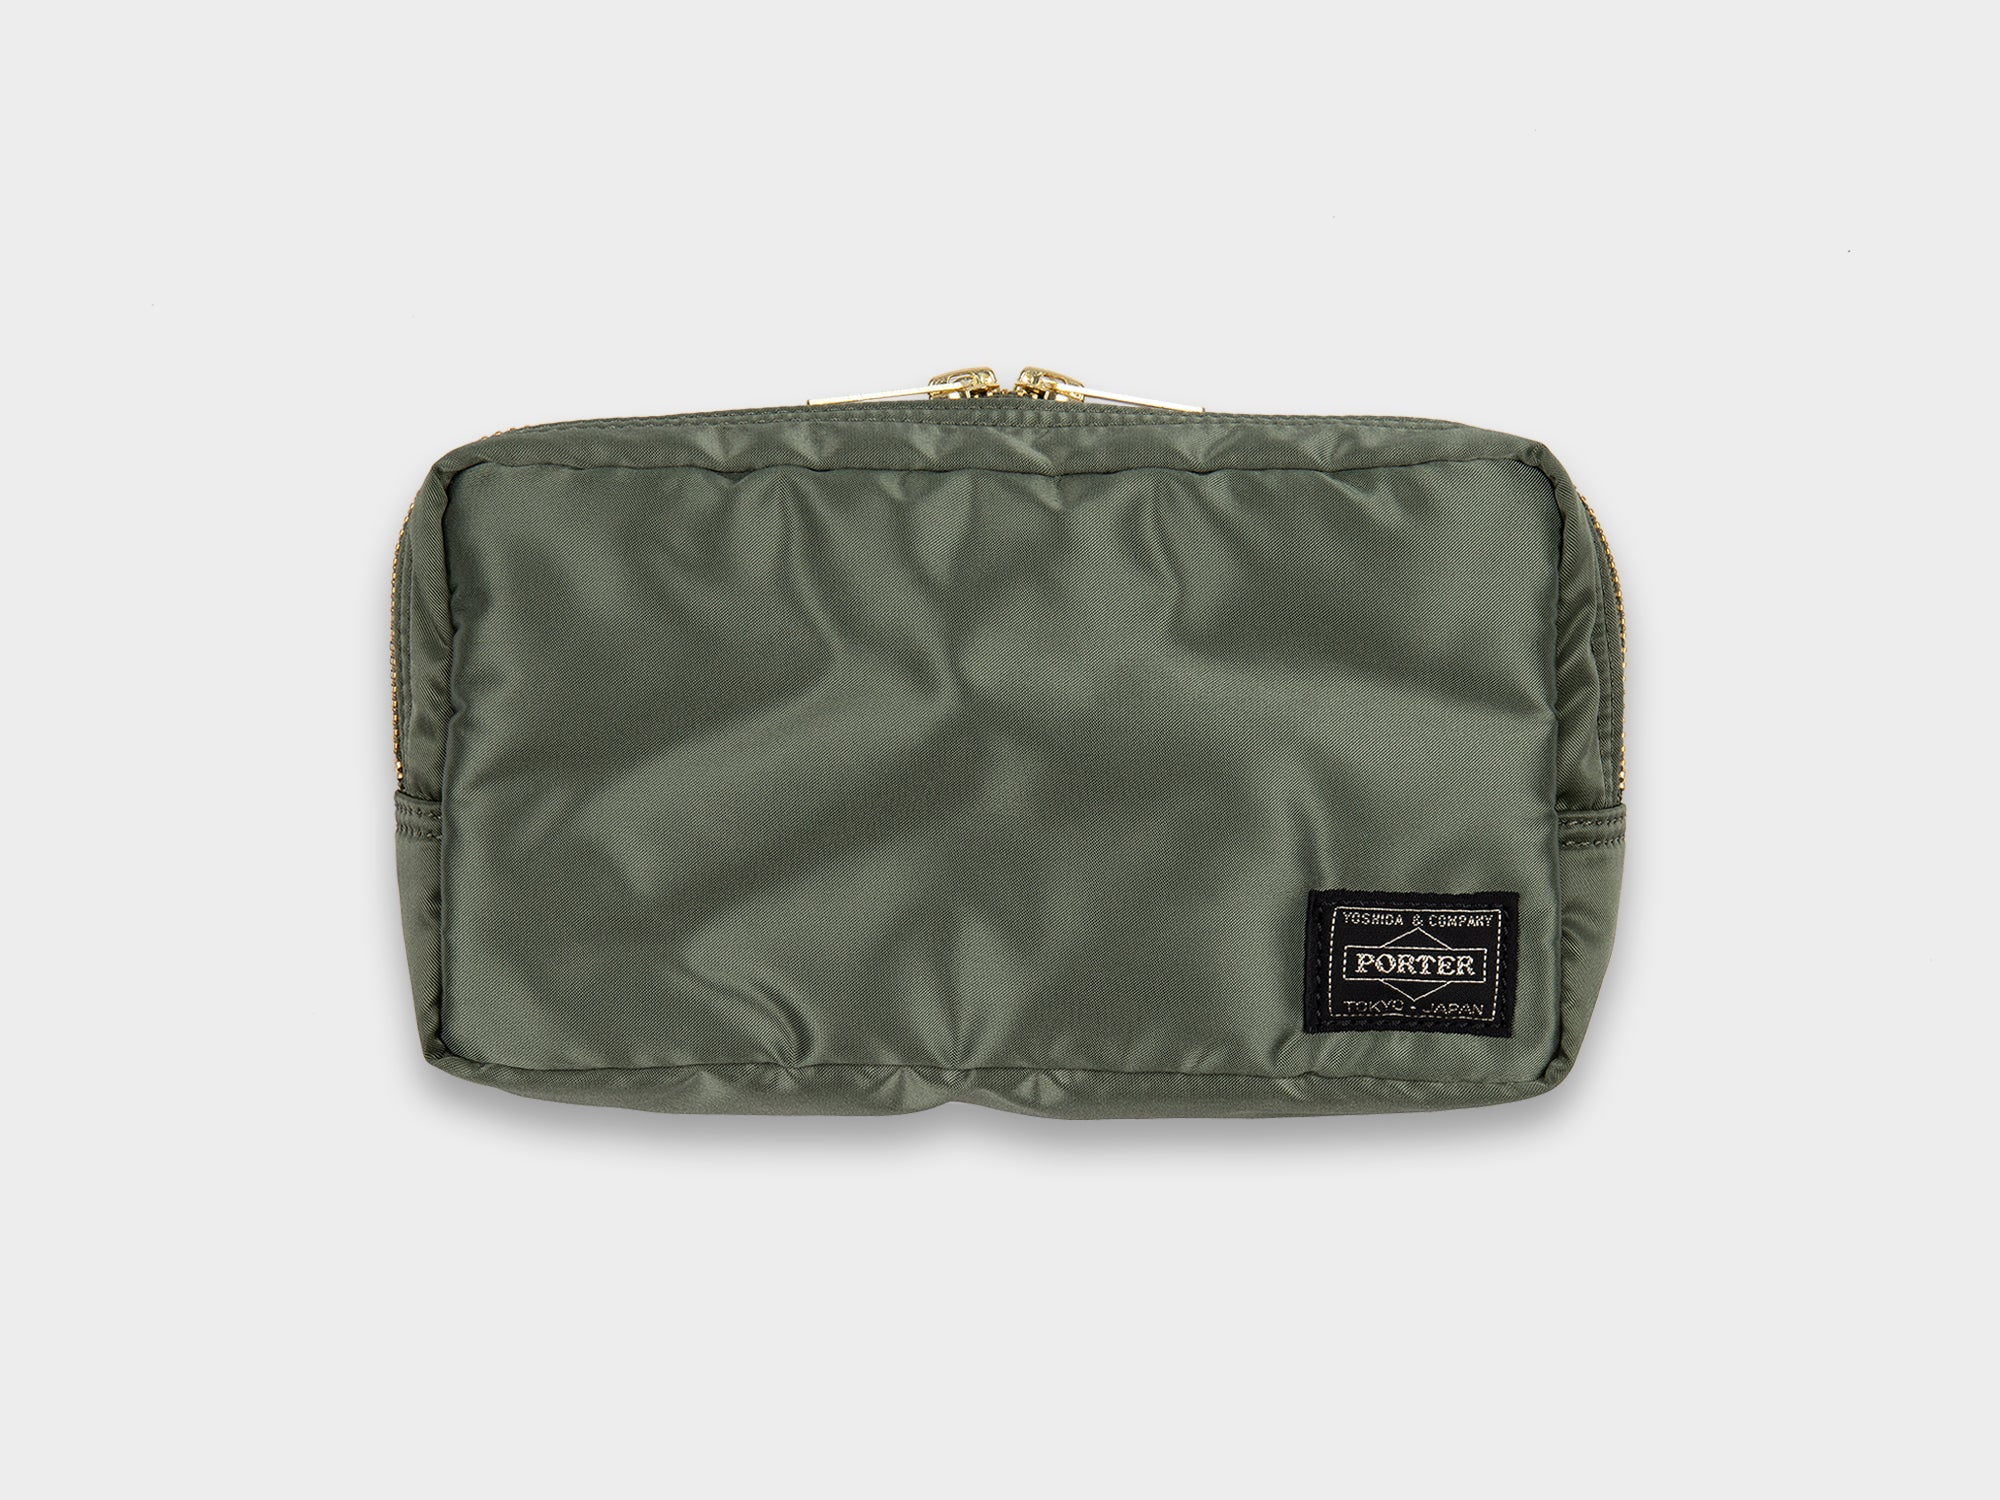 PORTER TANKER POUCH [SAGE]